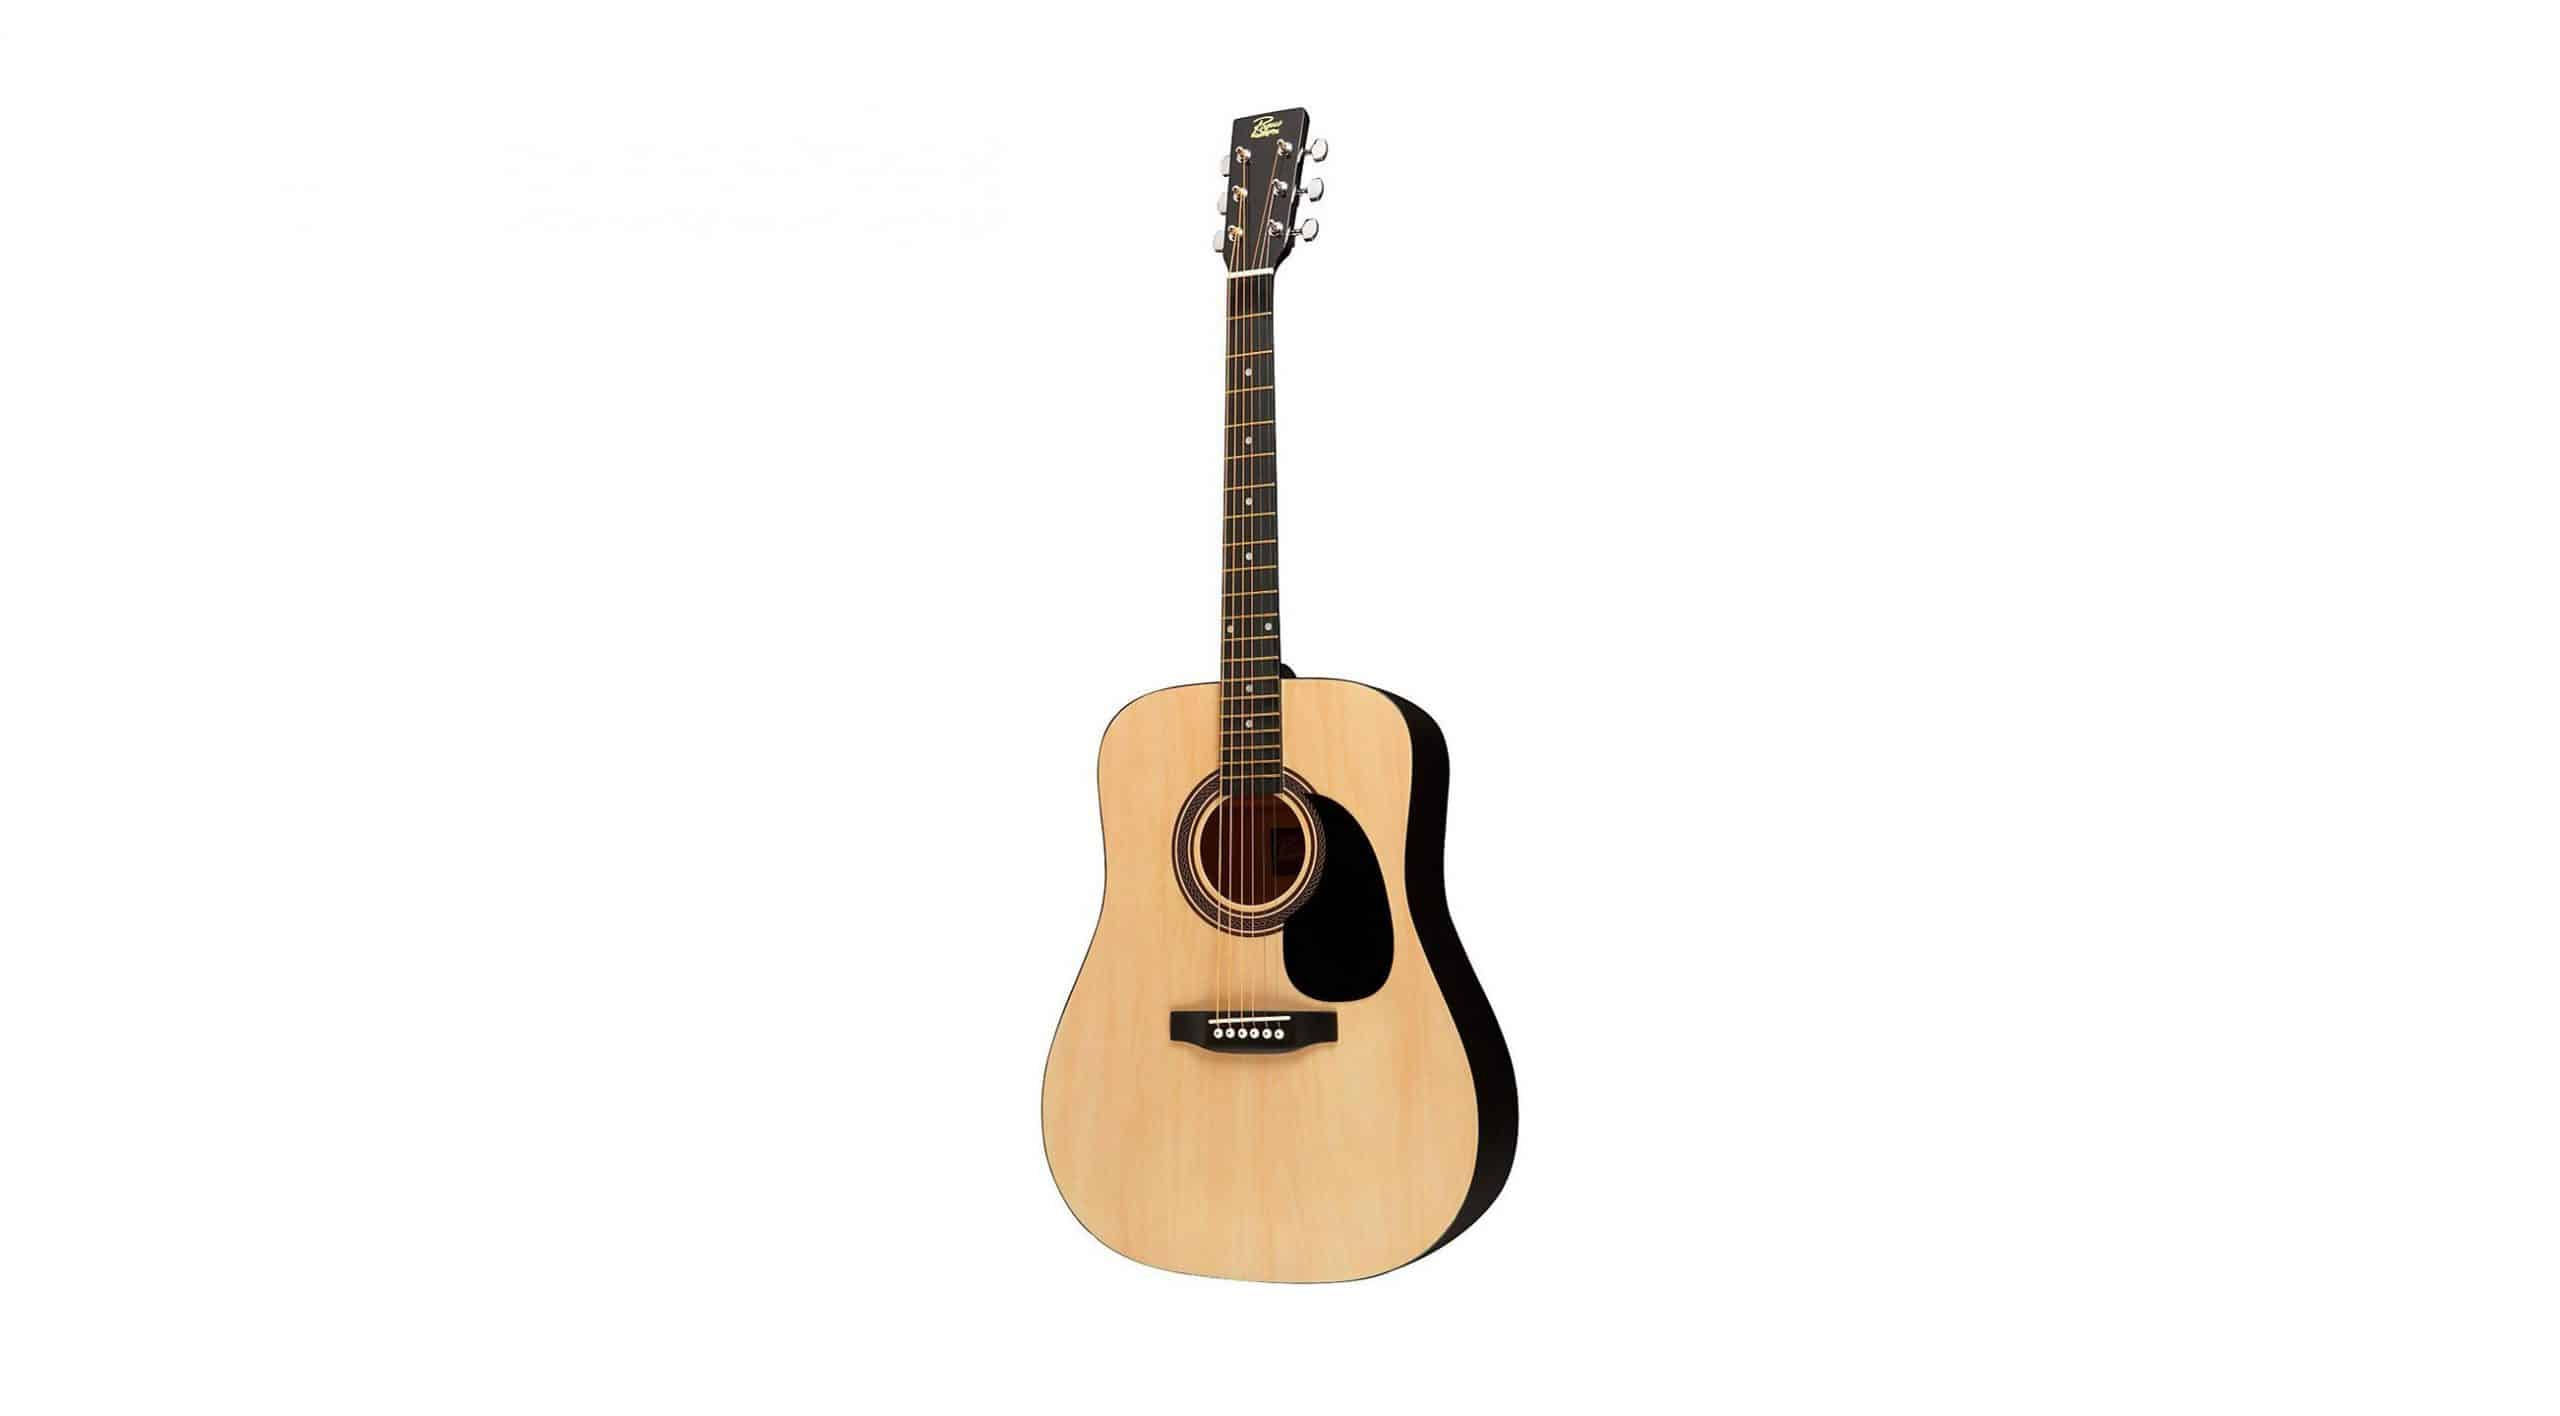 Rogue RA 090 Dreadnought Acoustic Guitar Review